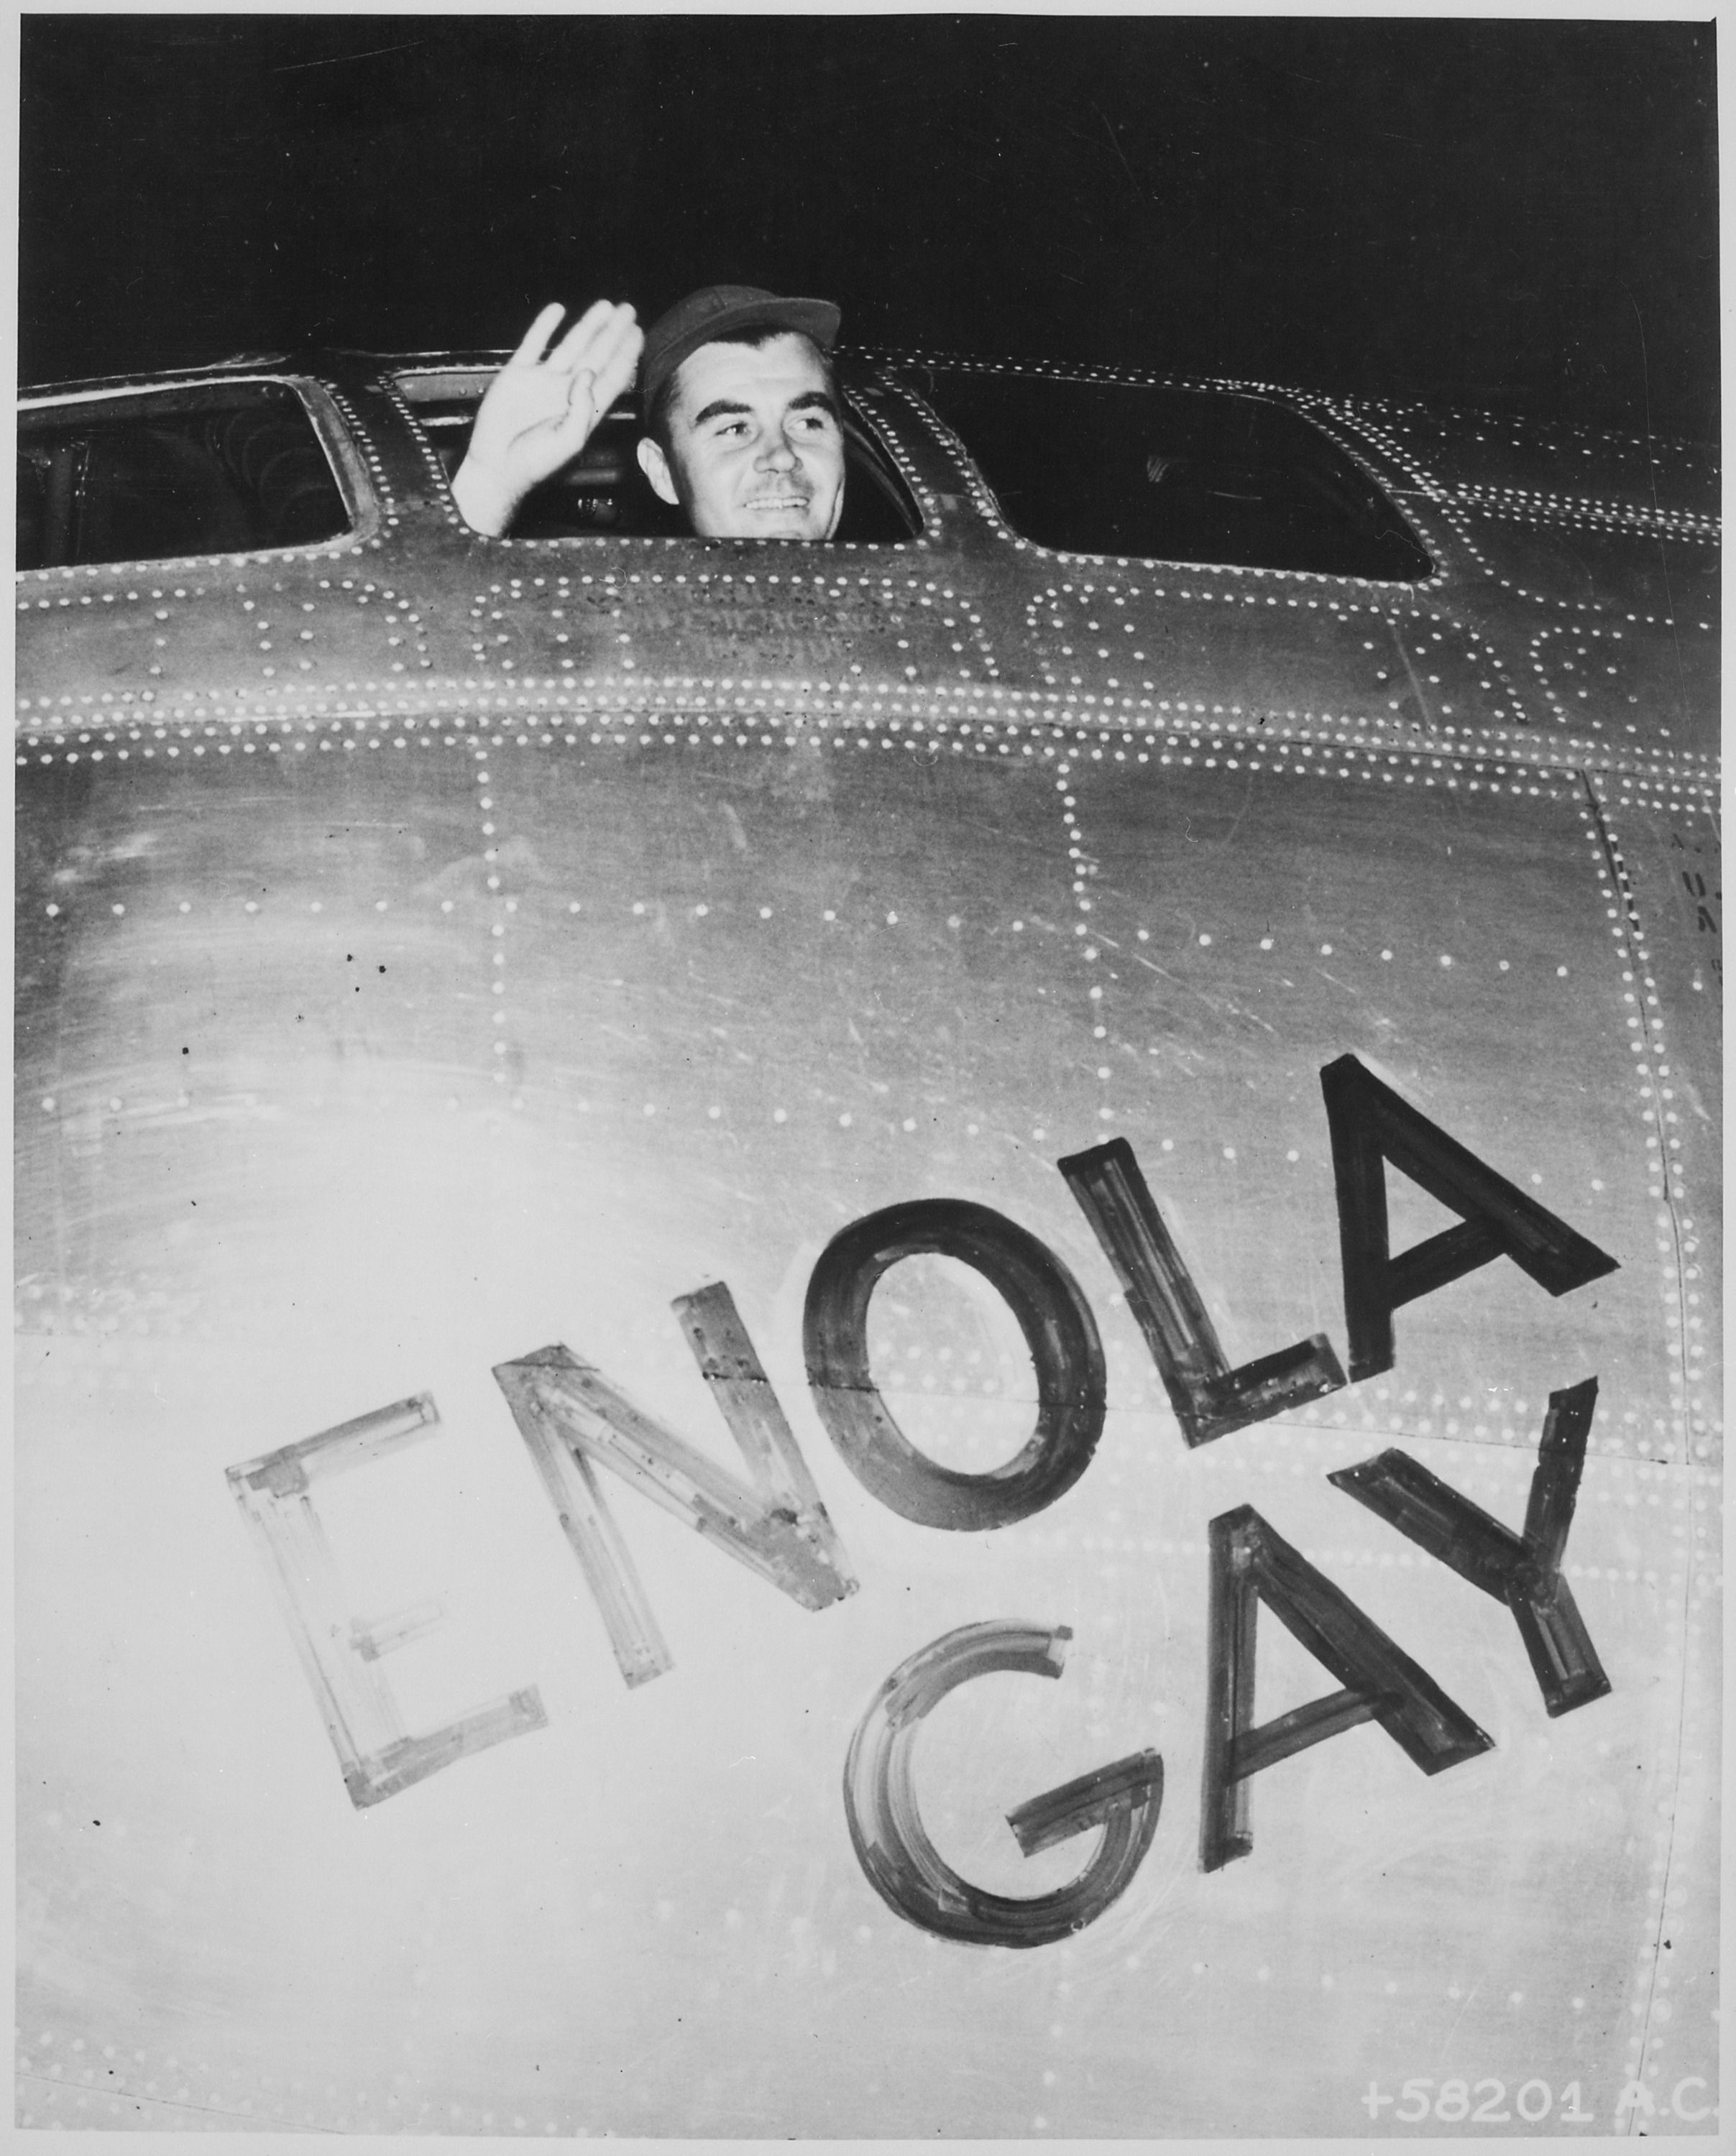 Signed Paul Tibbets Talks About How He Got Involved With the Hiroshima Bombing